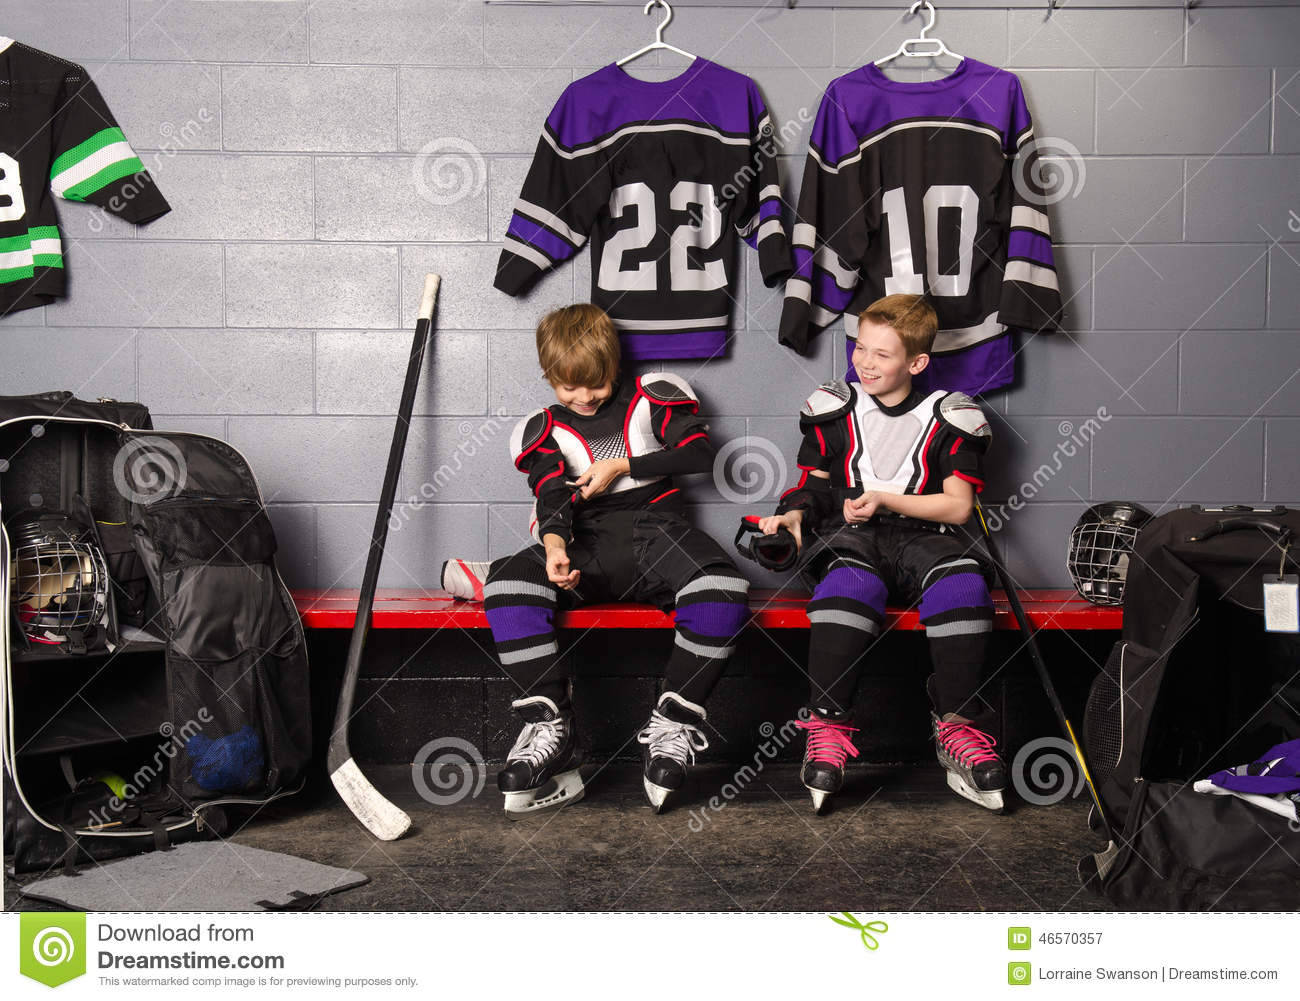 Image Result For The Pond Ice Arena